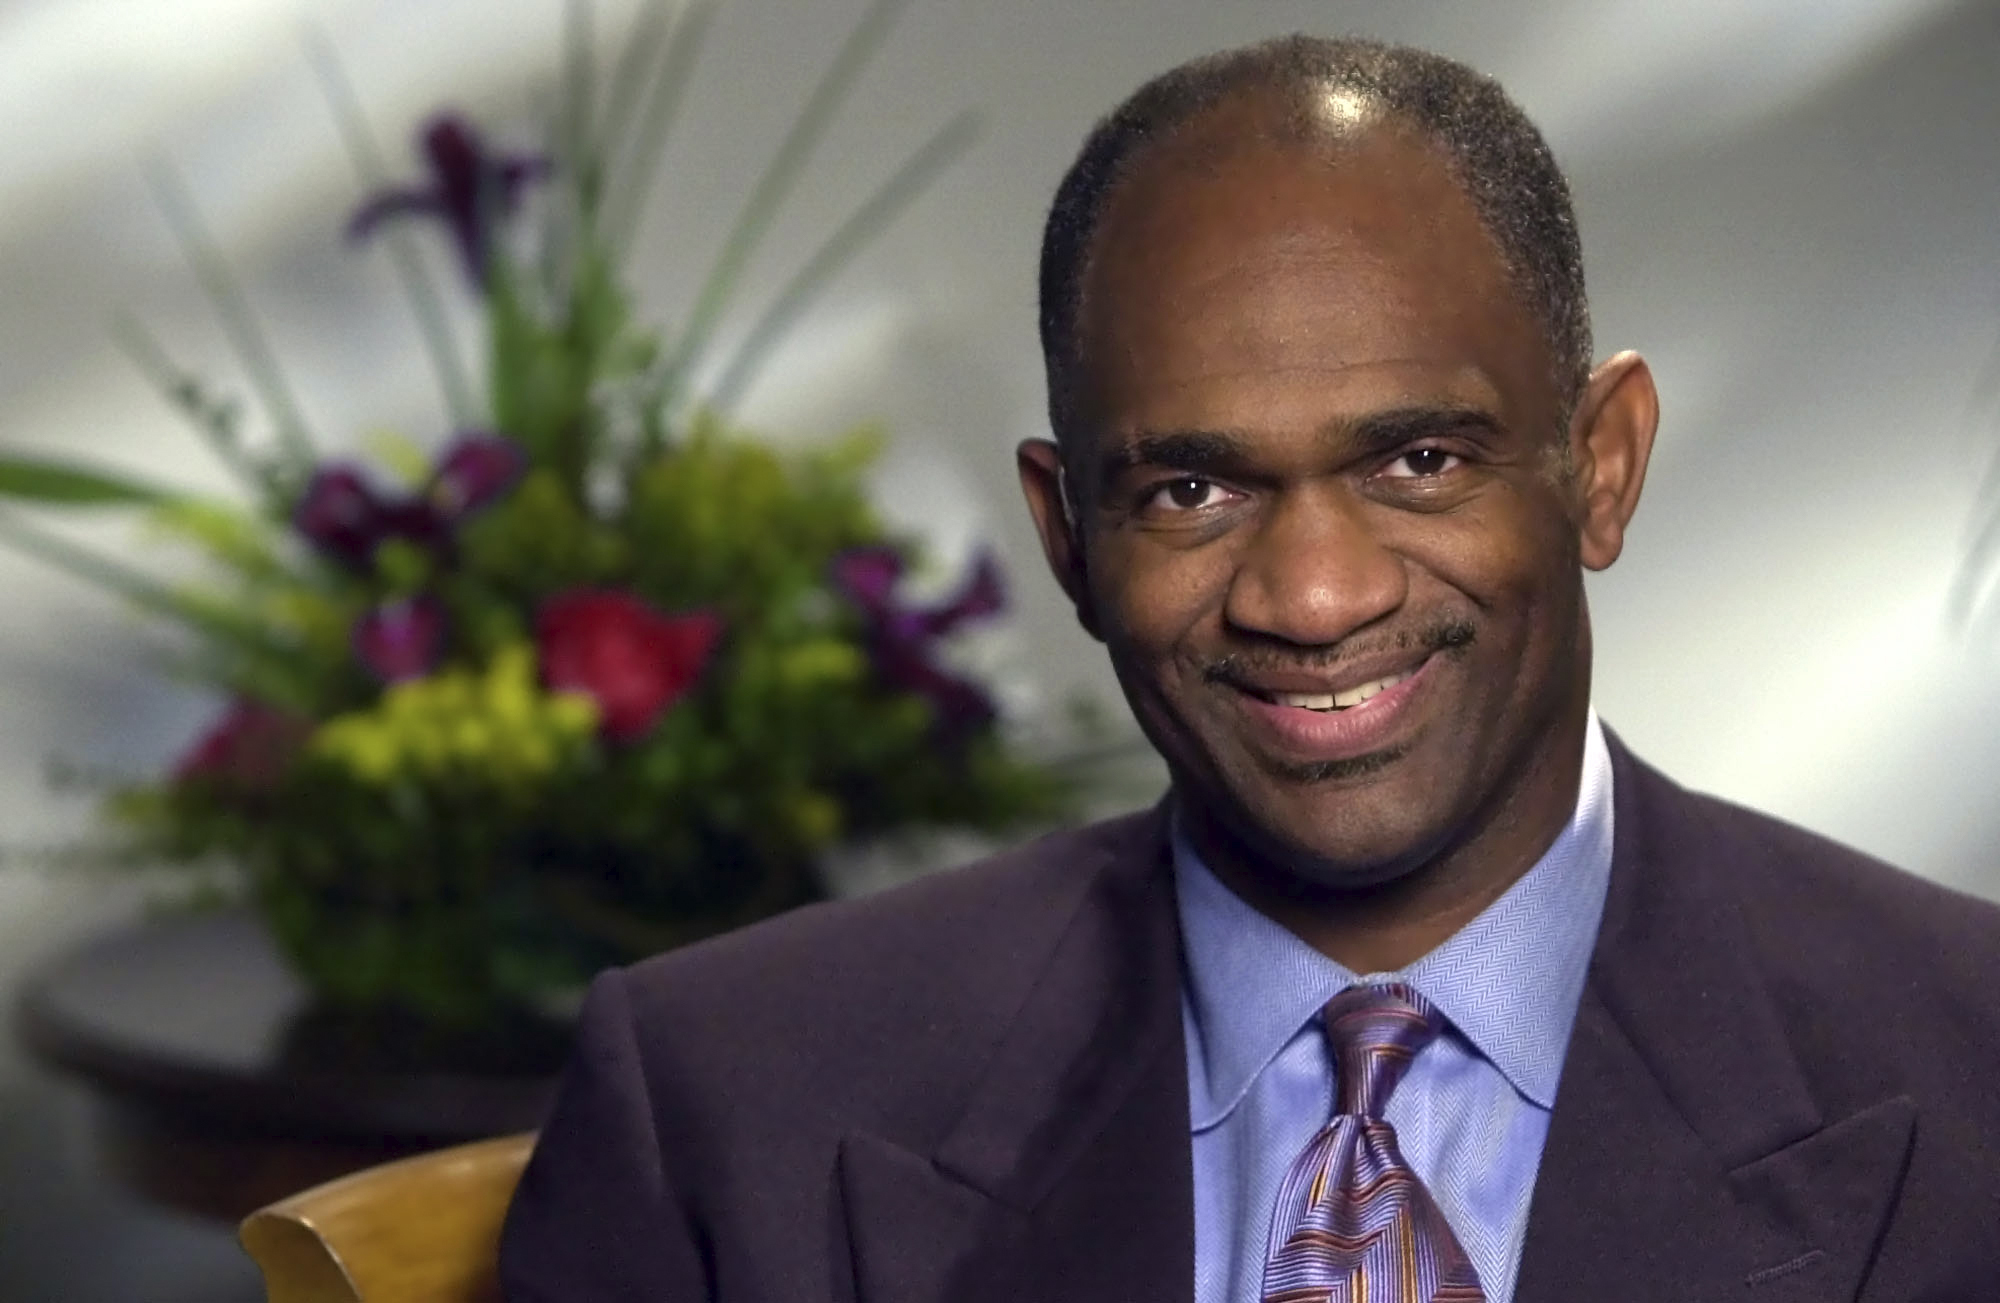 In this July 31, 2000, file photo, Rev. Kirbyjon Caldwell, pastor of Windsor Village United Methodist Church, poses during an interview in Houston. Caldwell a Texas megachurch pastor and former spiritual adviser to two U.S. presidents has been sentenced to six years in prison for bilking investors out of millions of dollars. Caldwell was sentenced Wednesday, Jan. 13, 2021, in Shreveport, La., where he and his co-defendant Gregory A. Smith, were indicted in 2018. (AP Photo/David J. Phillip File)